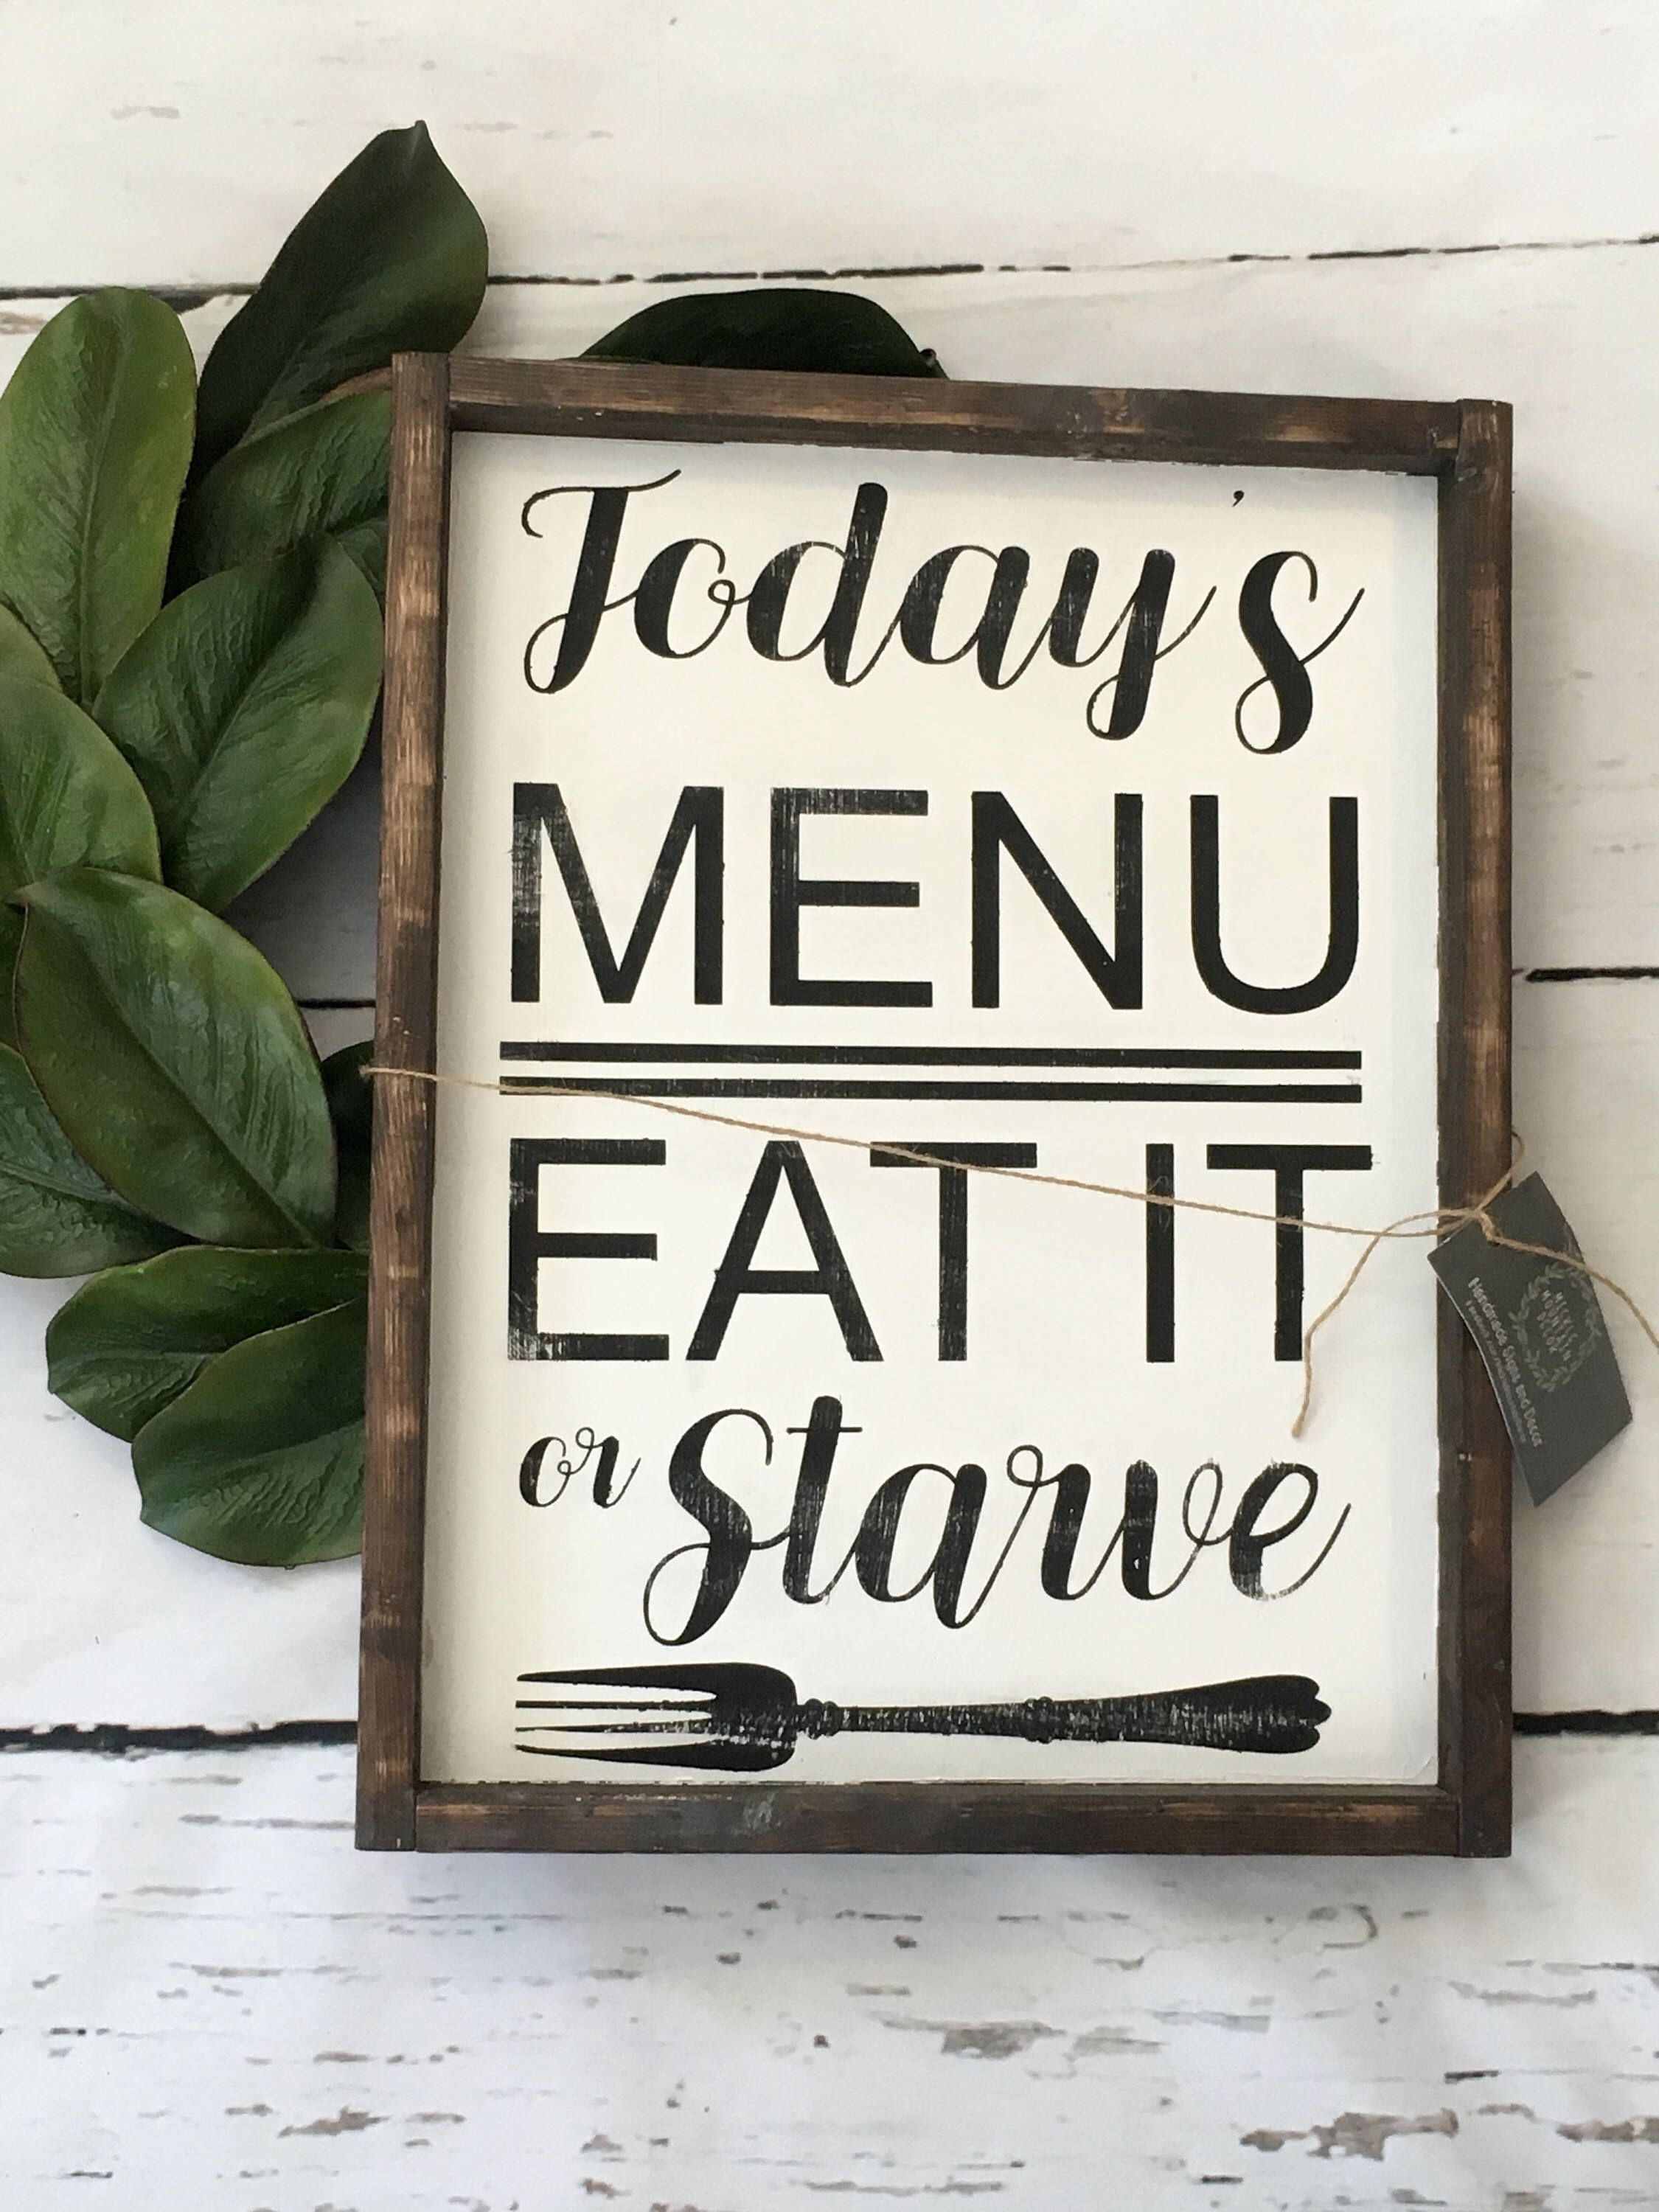 Todays Menu Sign Wood Sign Farmhouse Rustic Sign Kitchen By Micklemountaindecor On E Kitchen Decor Signs Rustic Kitchen Wall Decor Farmhouse Kitchen Signs